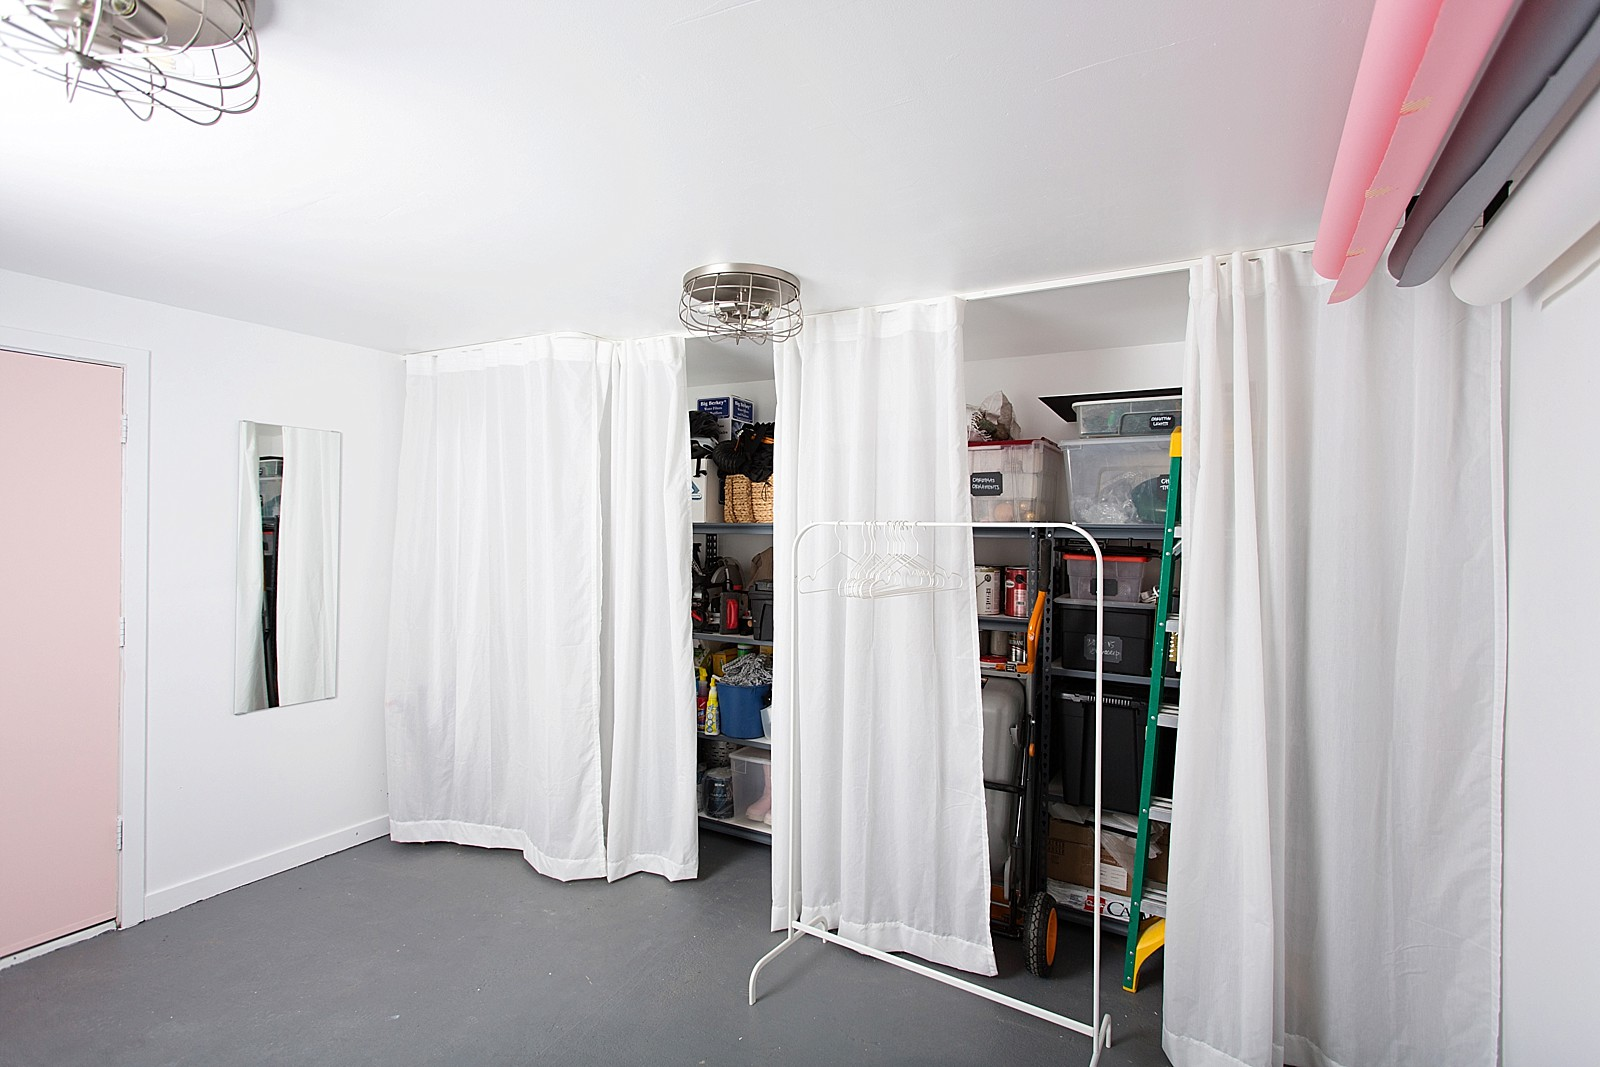 home-photography-studio-storage-tour-photographer-blogger-arizona-diana-elizabeth-blog-1979